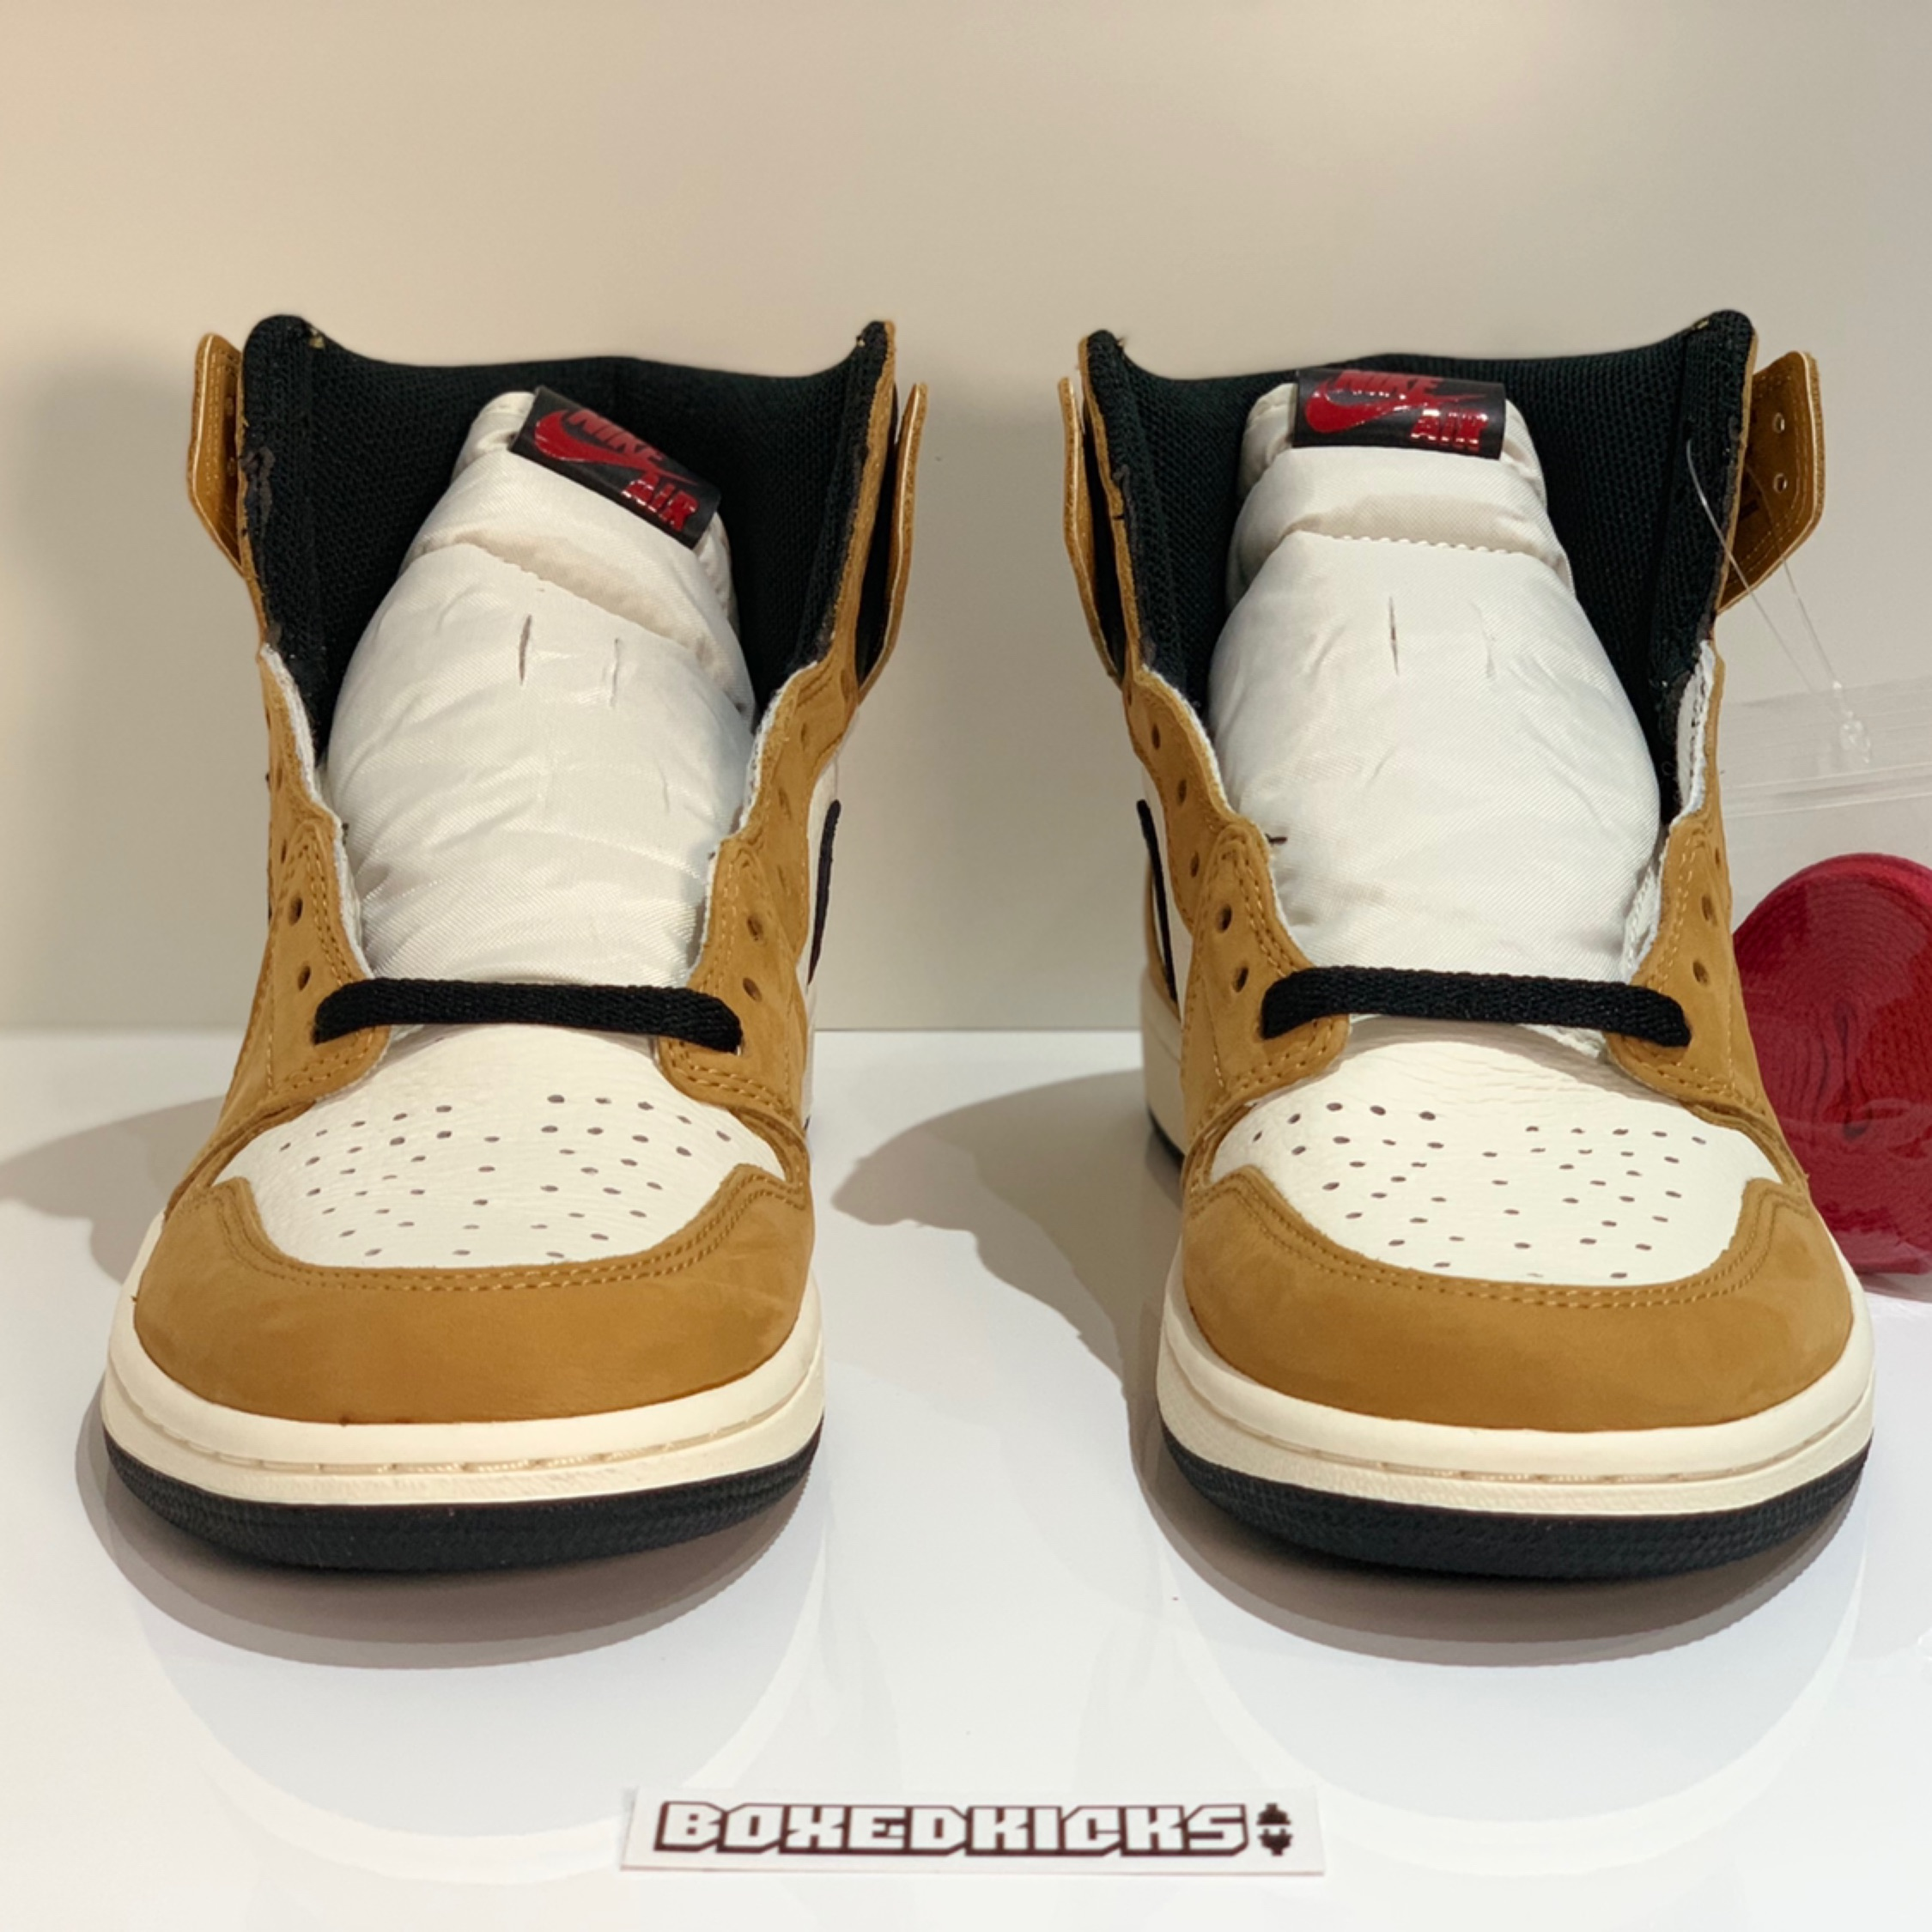 acde4f15cd2330 Nike Air Jordan 1 Rookie Of The Year Roty